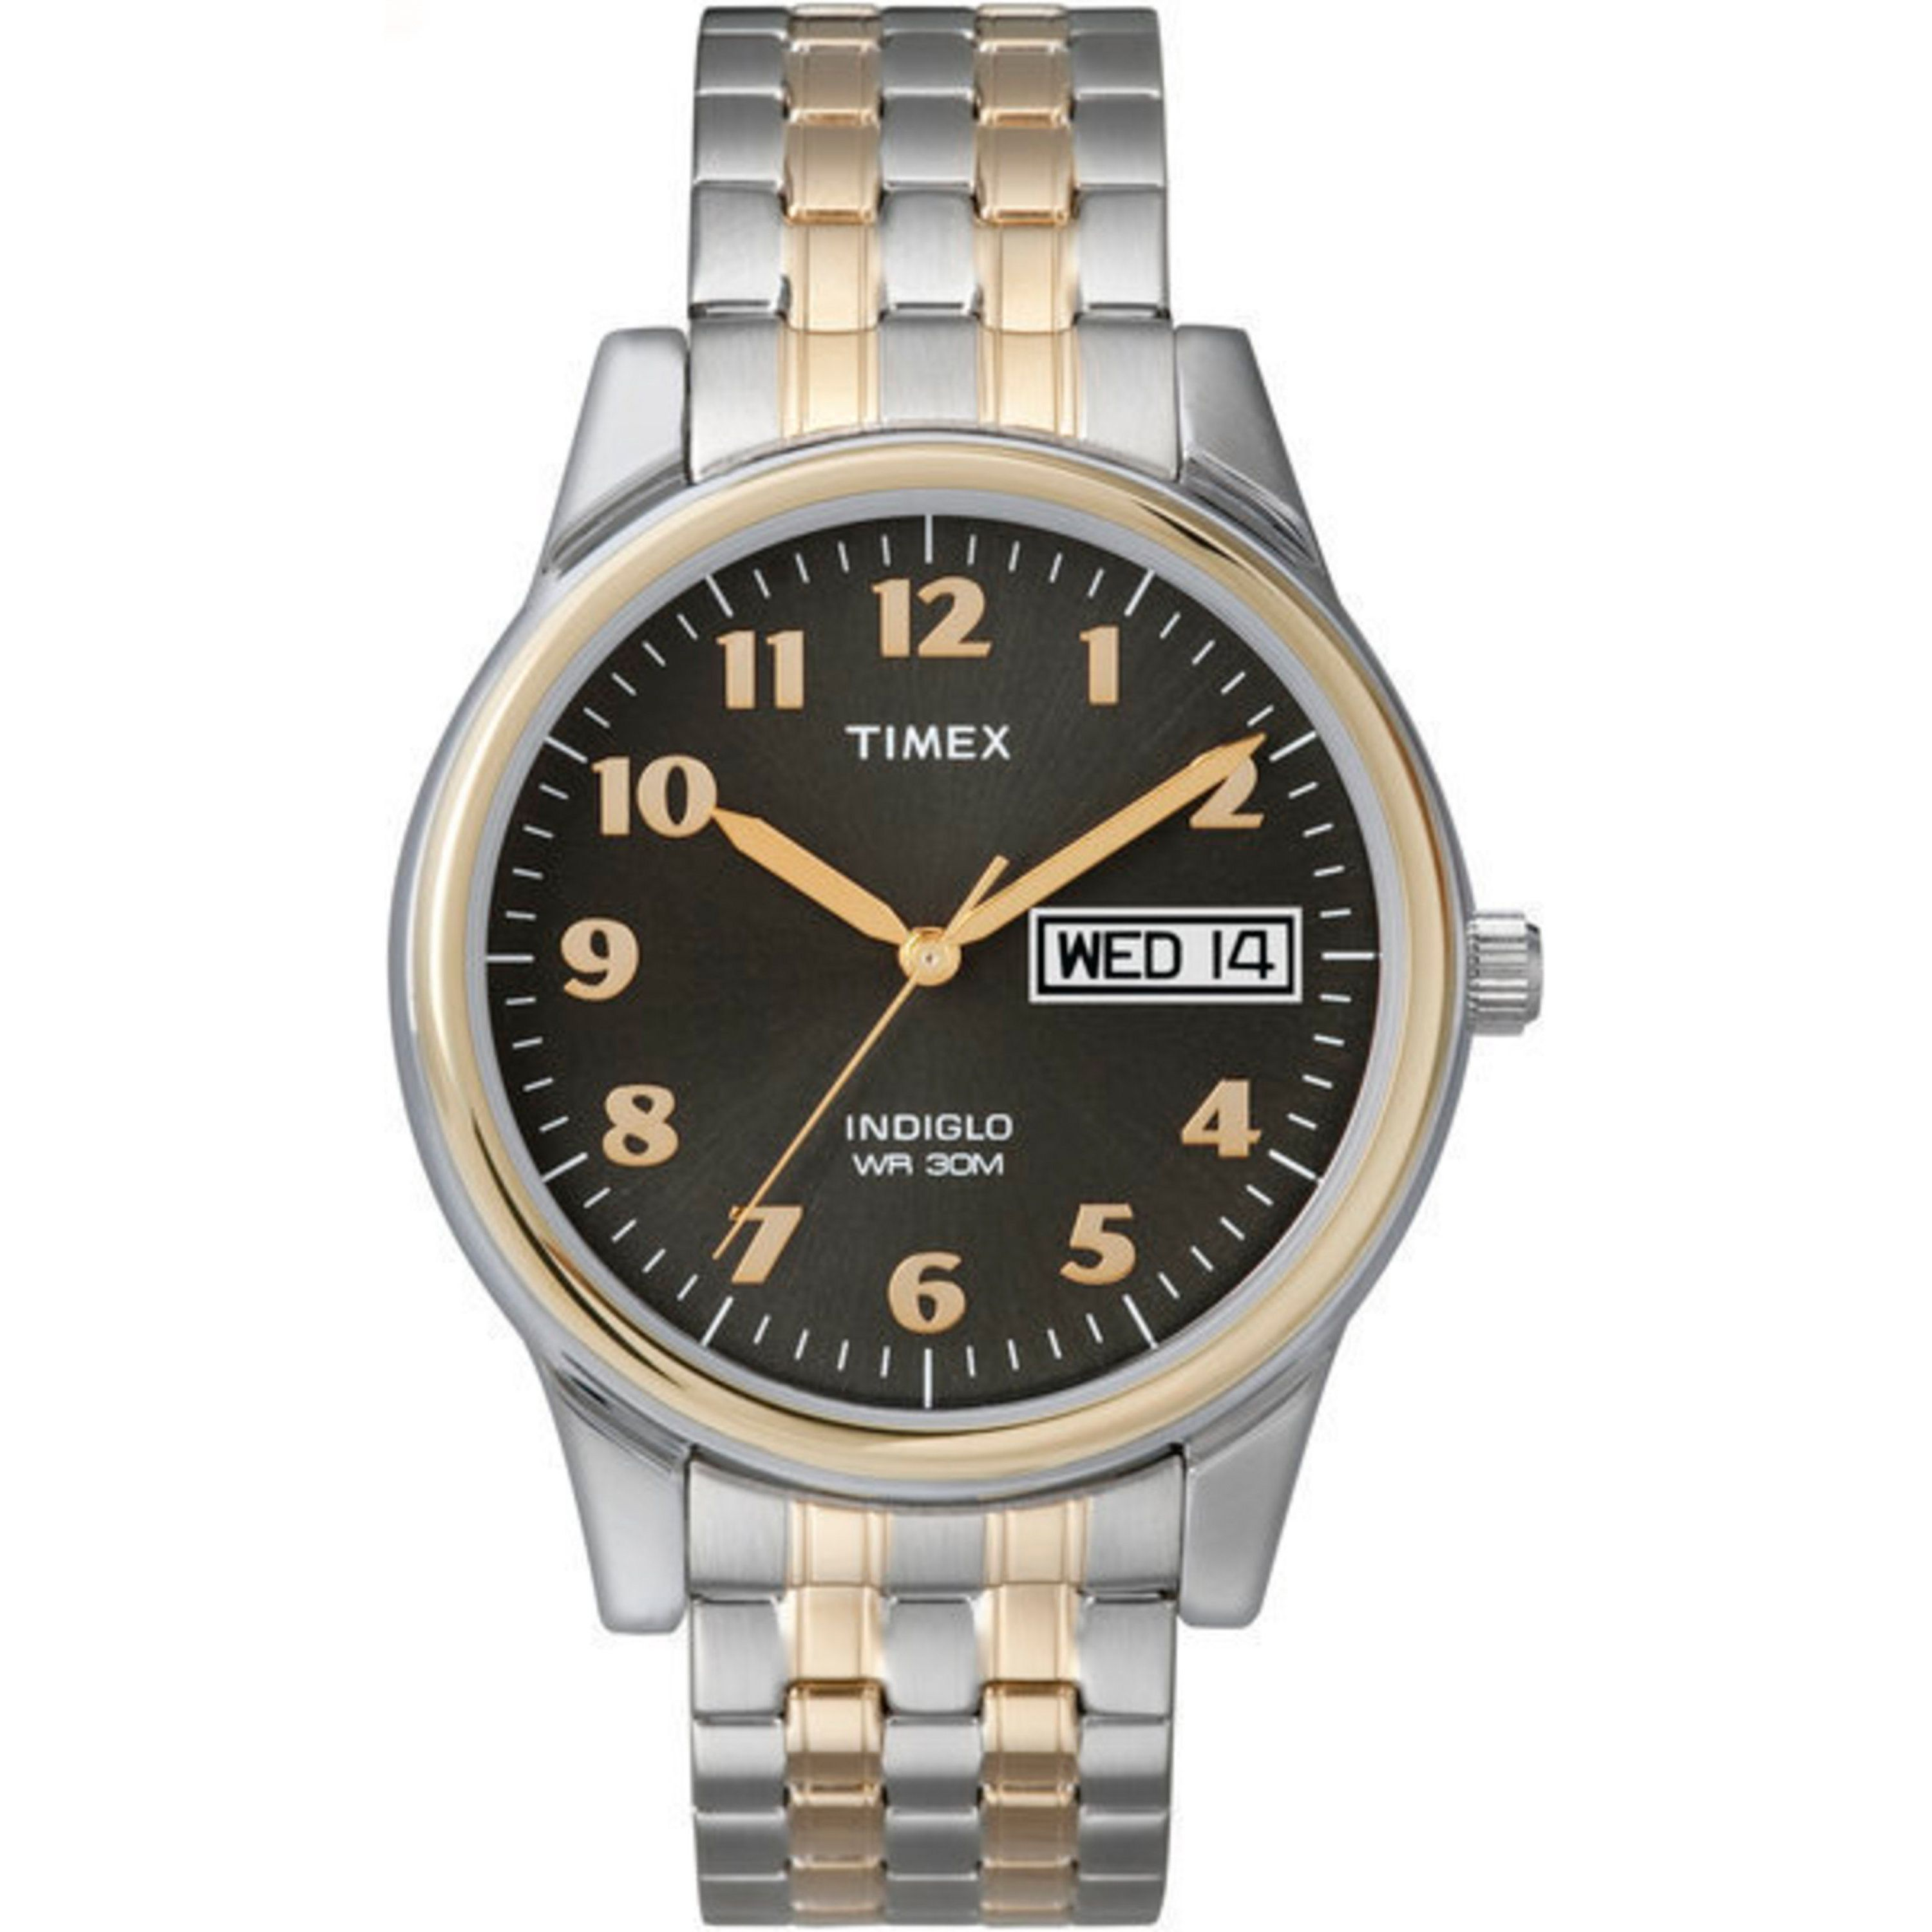 timex men s t26481 elevated classics stainless steel expansion timex men s t26481 elevated classics stainless steel expansion band watch